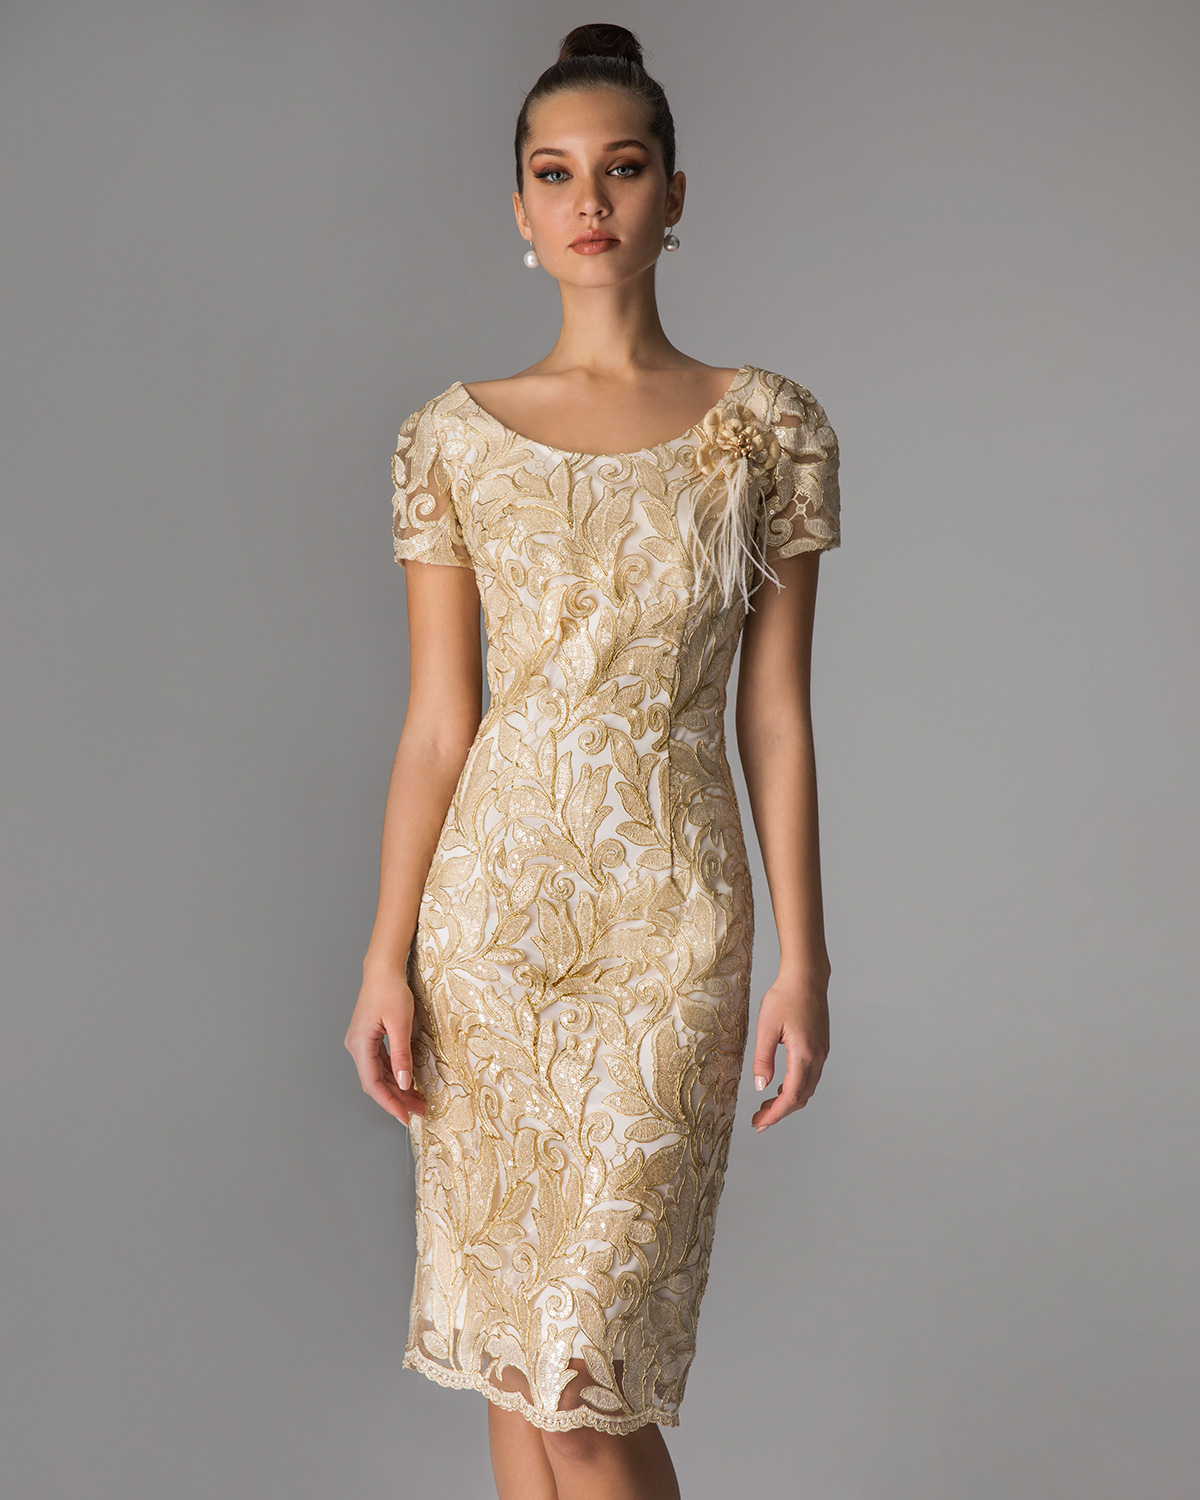 Classic Dresses / Short lace dress for mother of the bride  with short sleeves